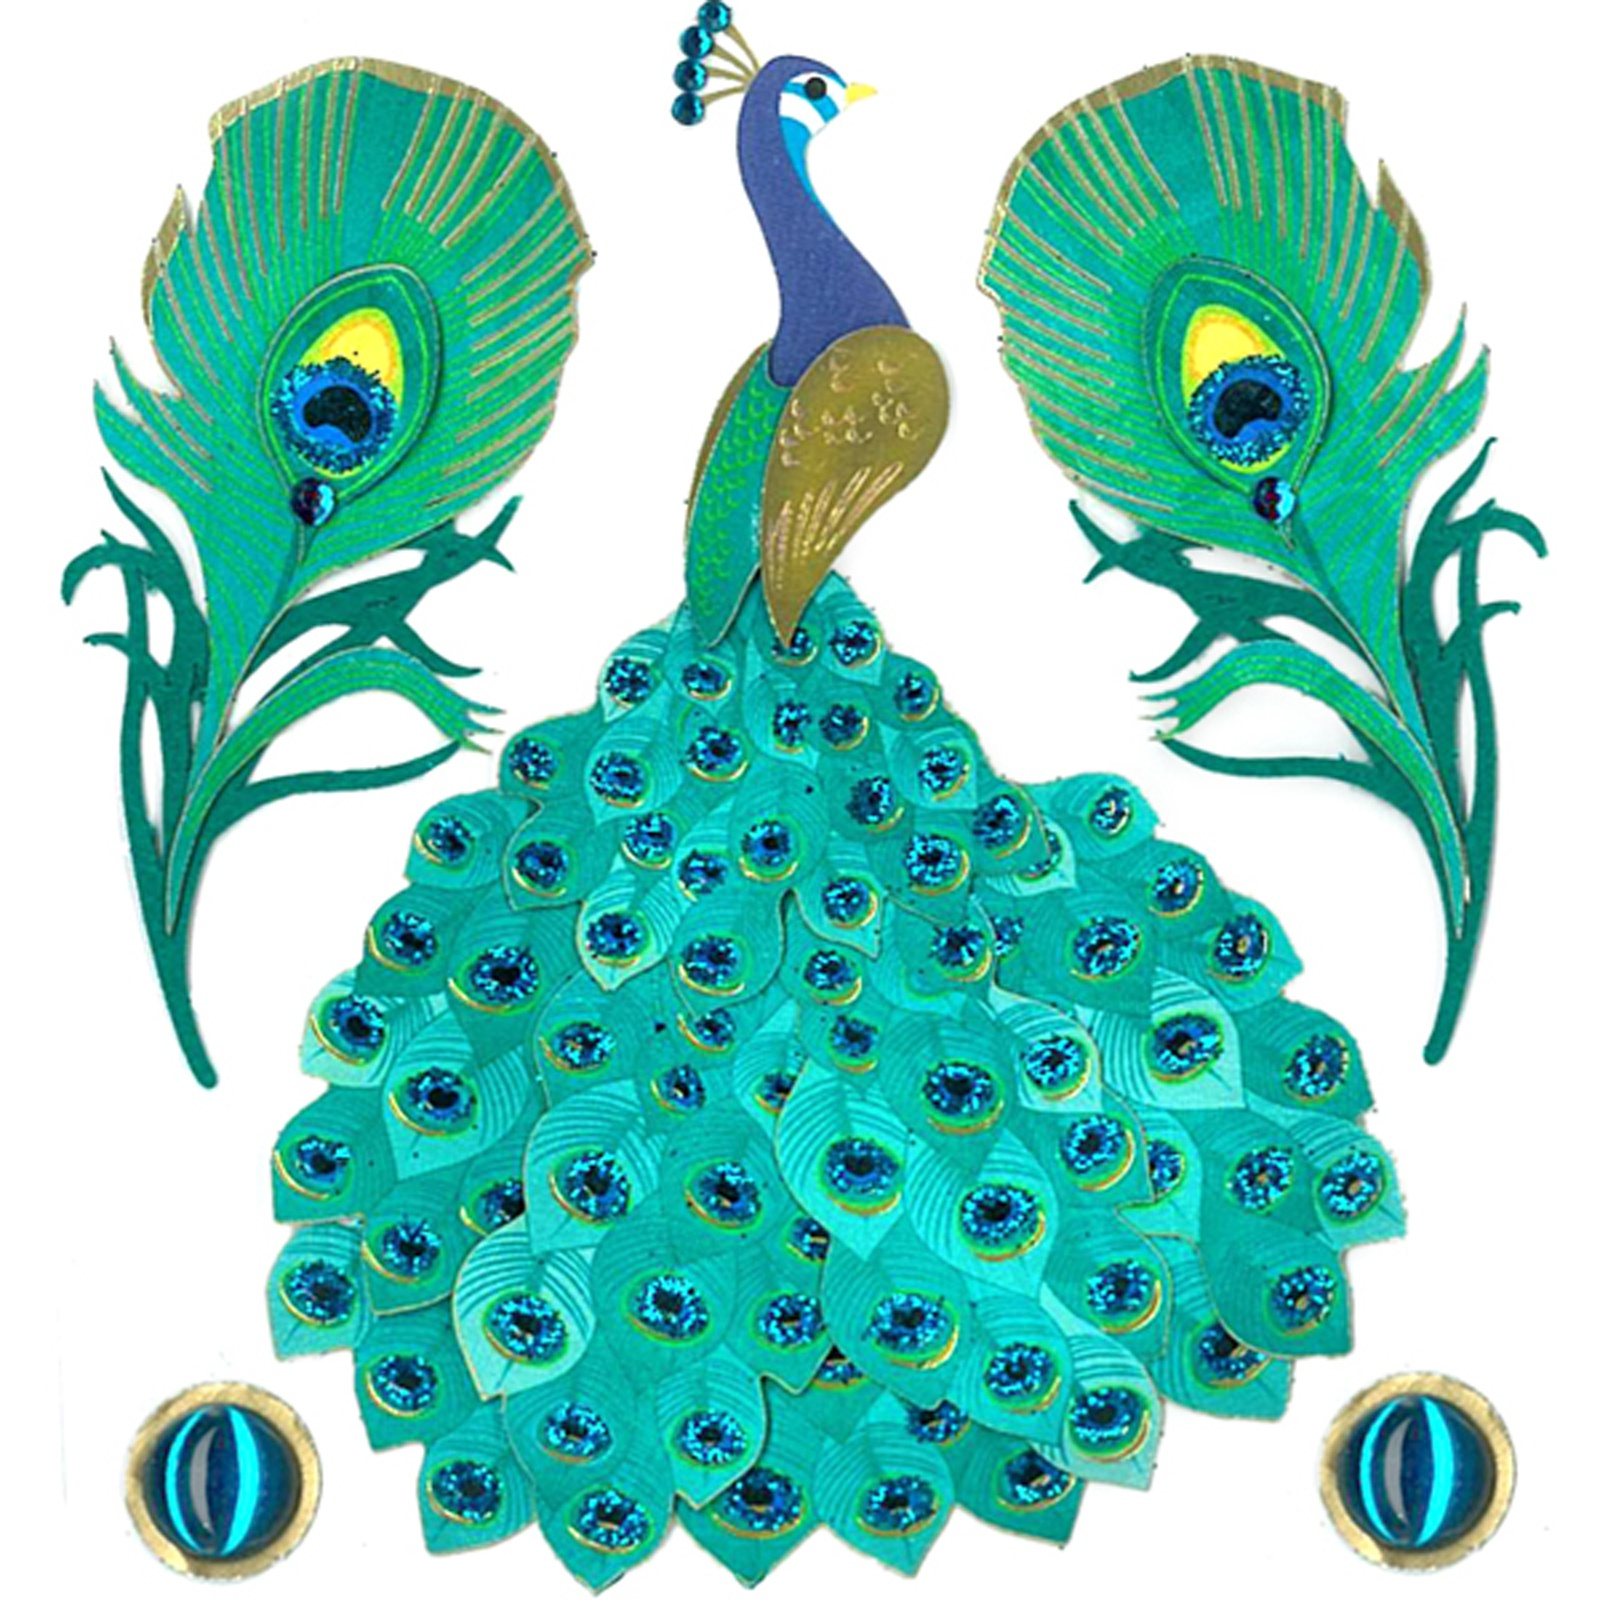 Jolee's Boutique Themed Embellishment-Peacock